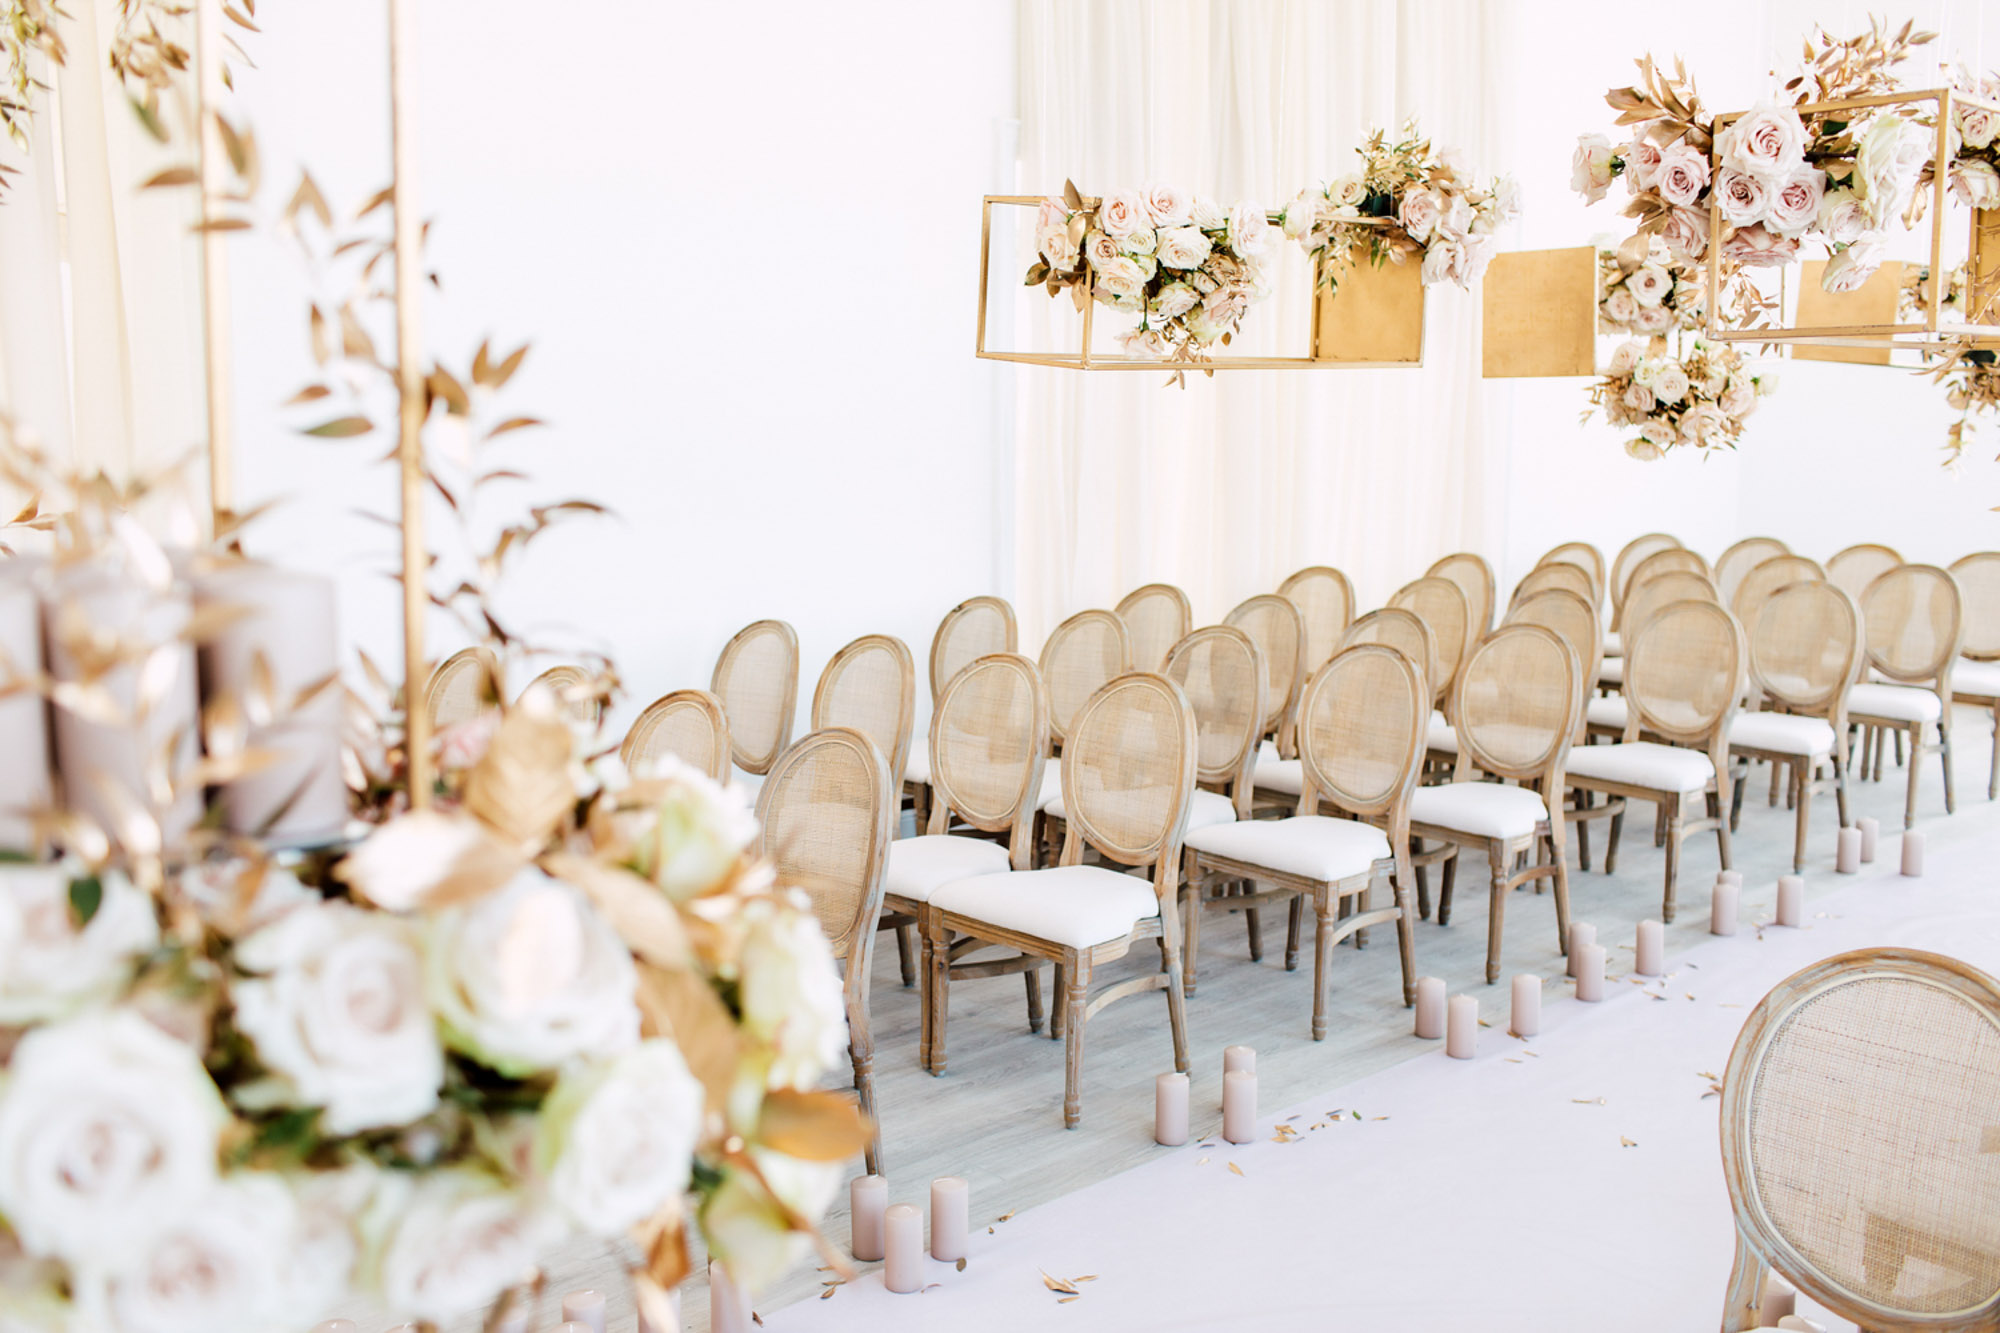 aisle decorations runner chairs